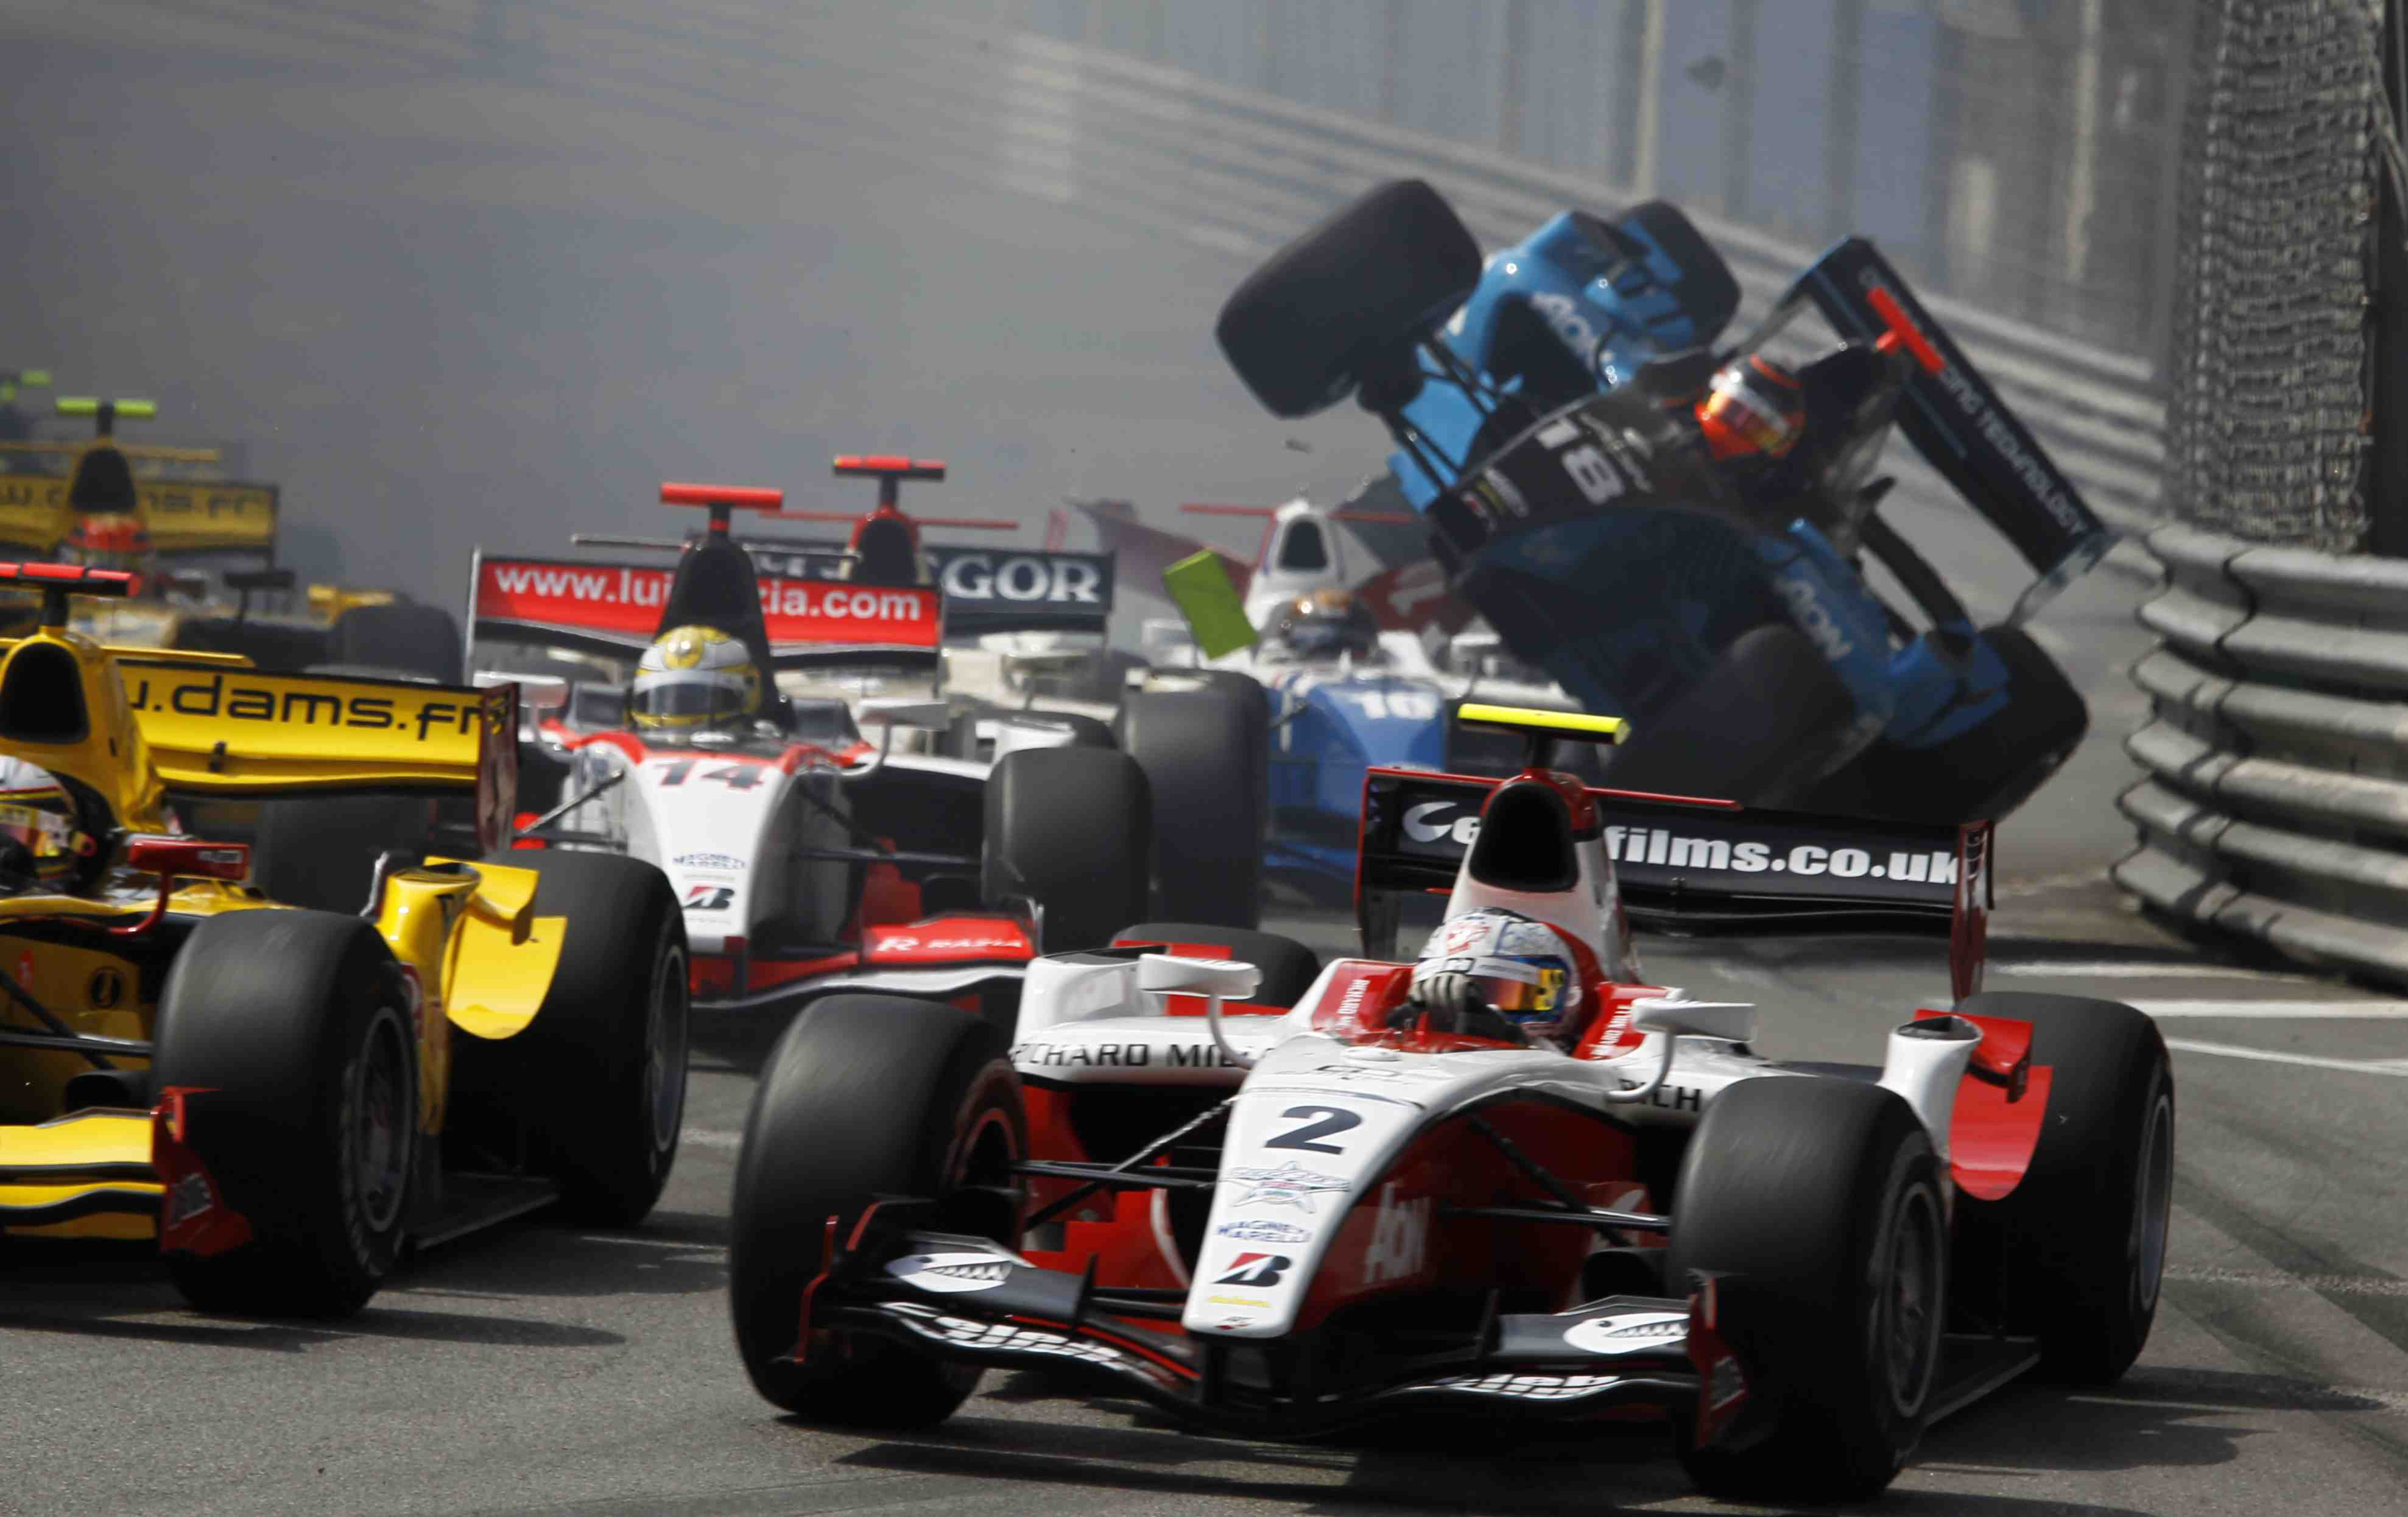 ART wants to rekindle French interest in F1